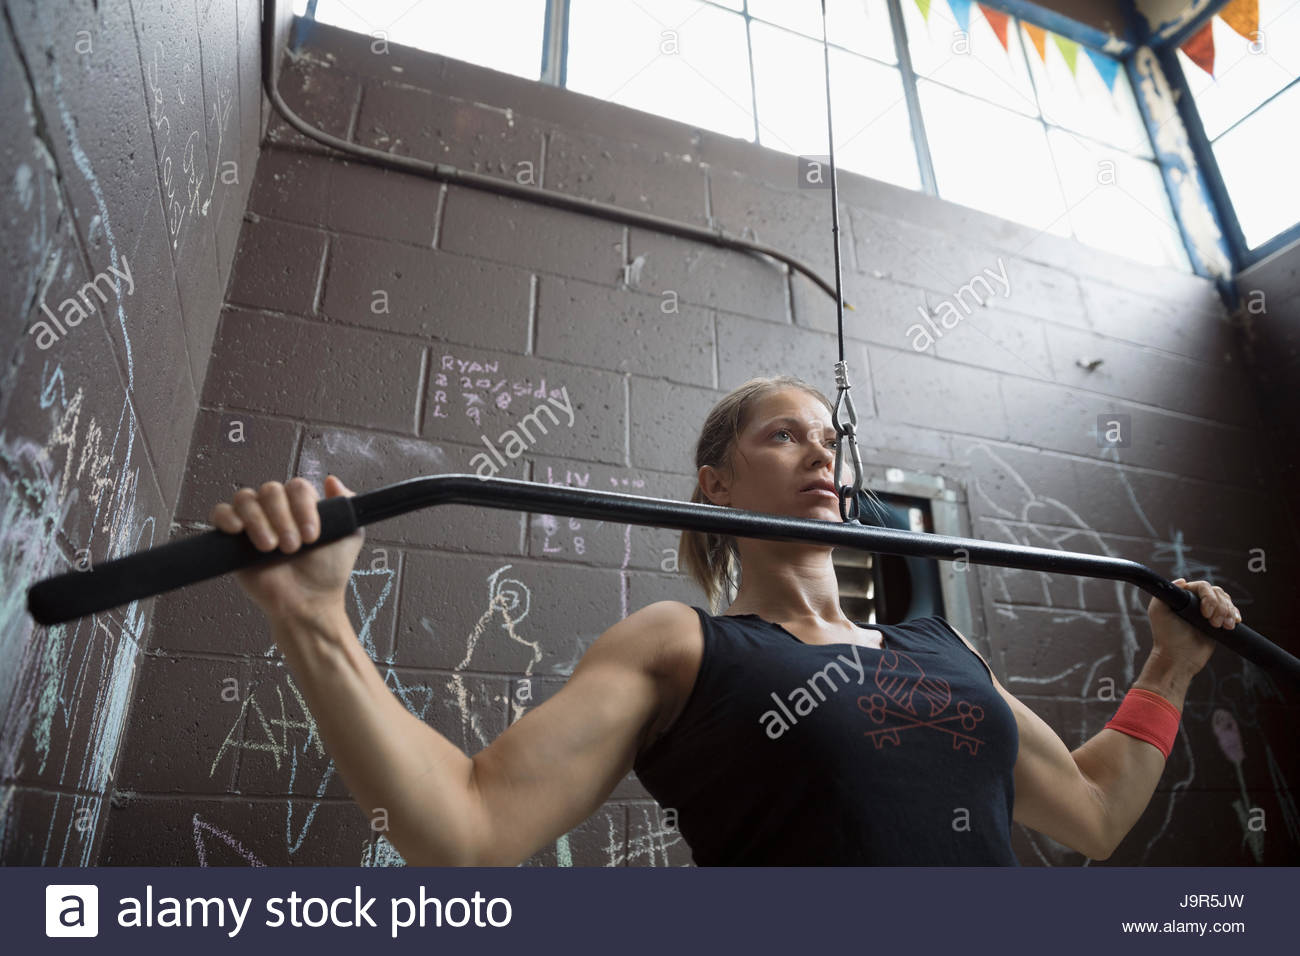 Fit woman weightlifting, doing pull downs in gritty gym - Stock Image